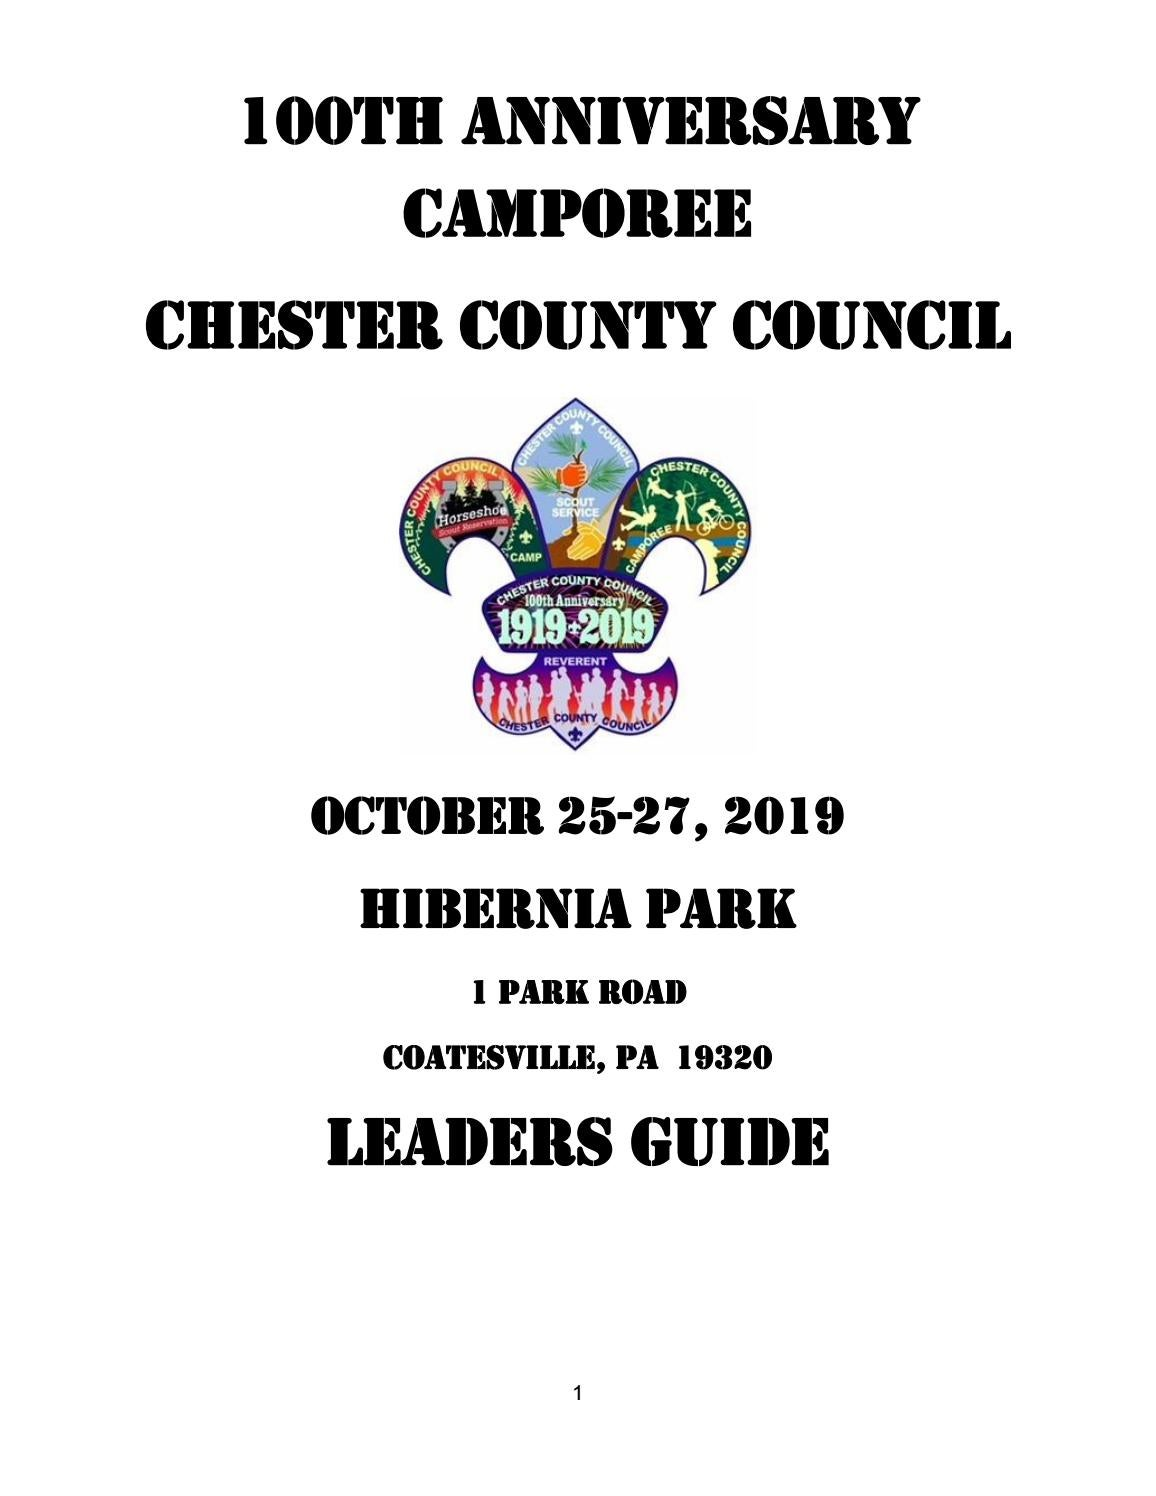 Chester County Council 100th Anniversary Camporee Leaders